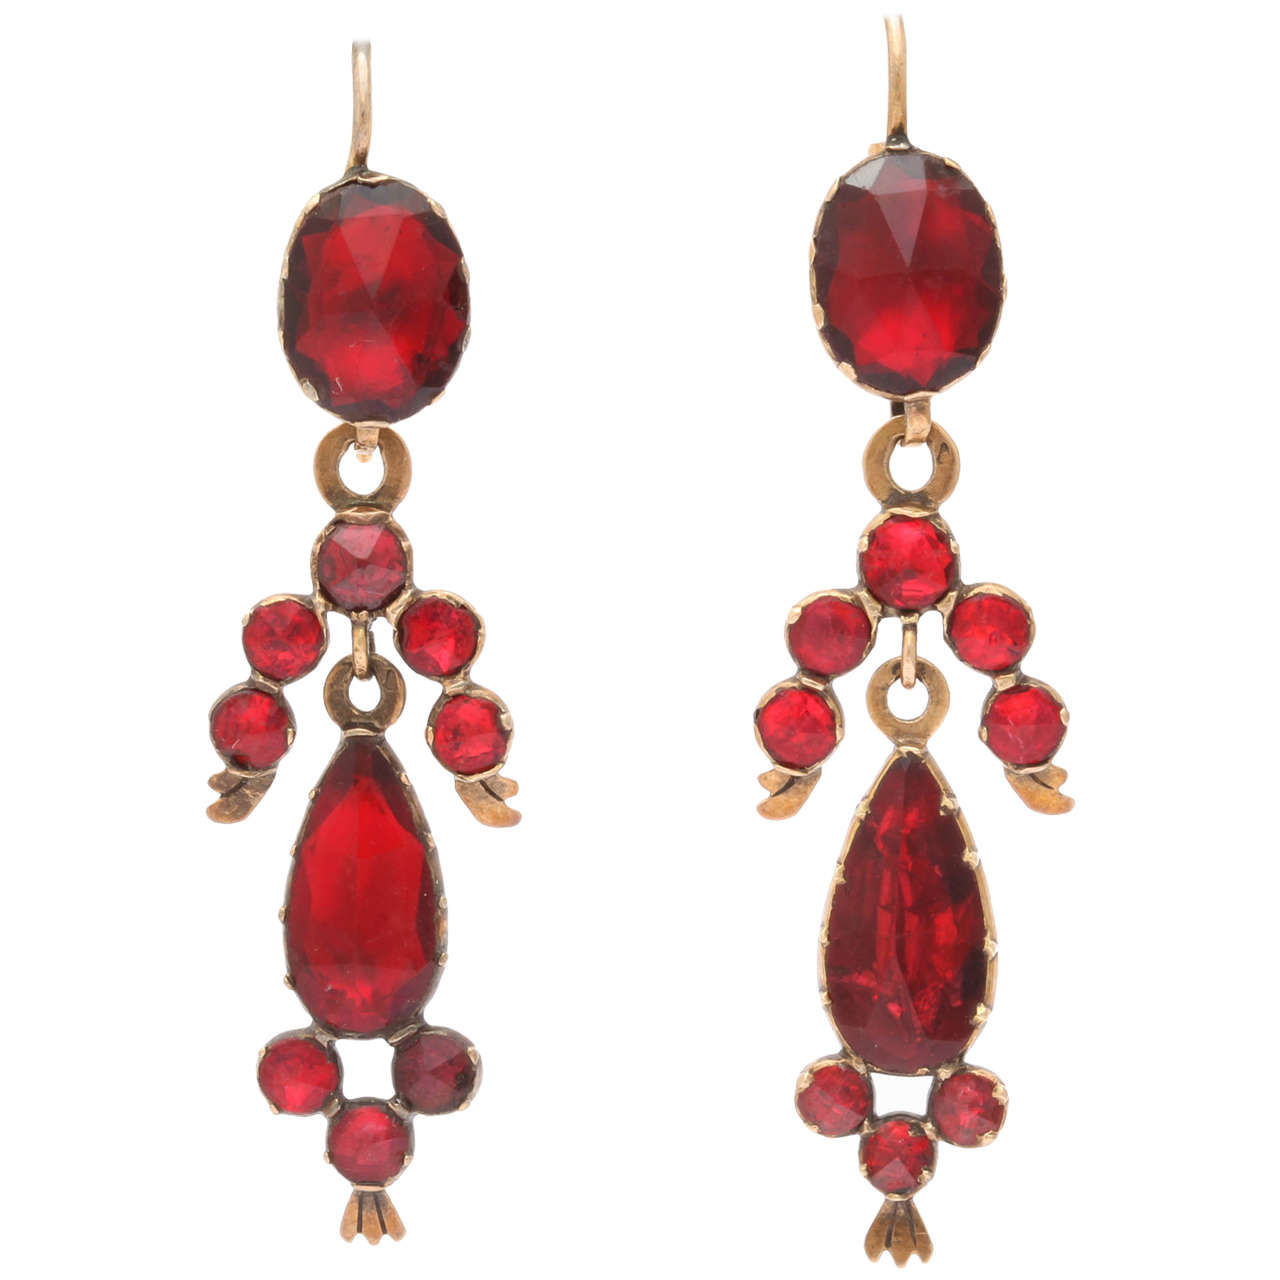 French Perpignan Garnet Earrings, the Excitement of Color